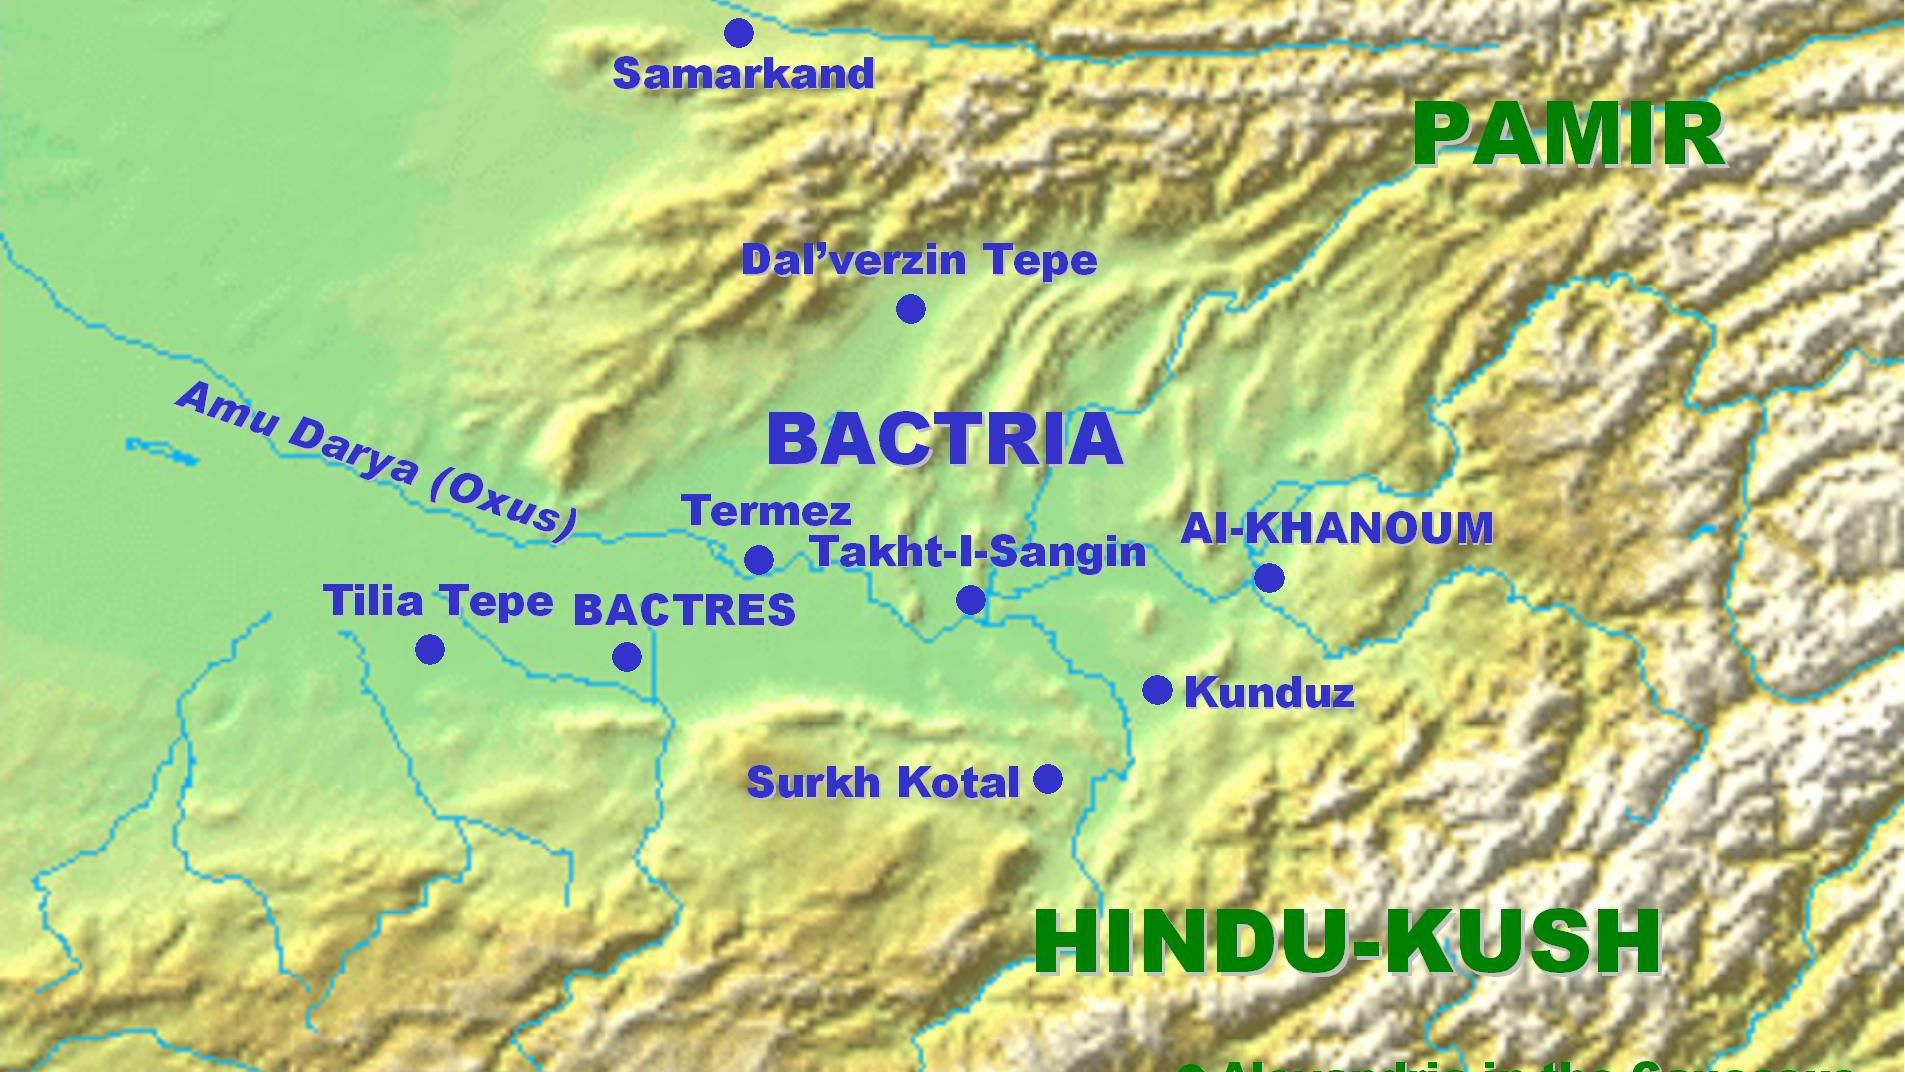 Where Is Bactria and What Is Its History? on world records, world wallpaper, world of warships, world border, world flag, world shipping lanes, world culture, world travel, world war, world glode, world history, world most beautiful nature, world military, world projection, world wide web, world hunger, world atlas, world earth, world statistics, world globe,